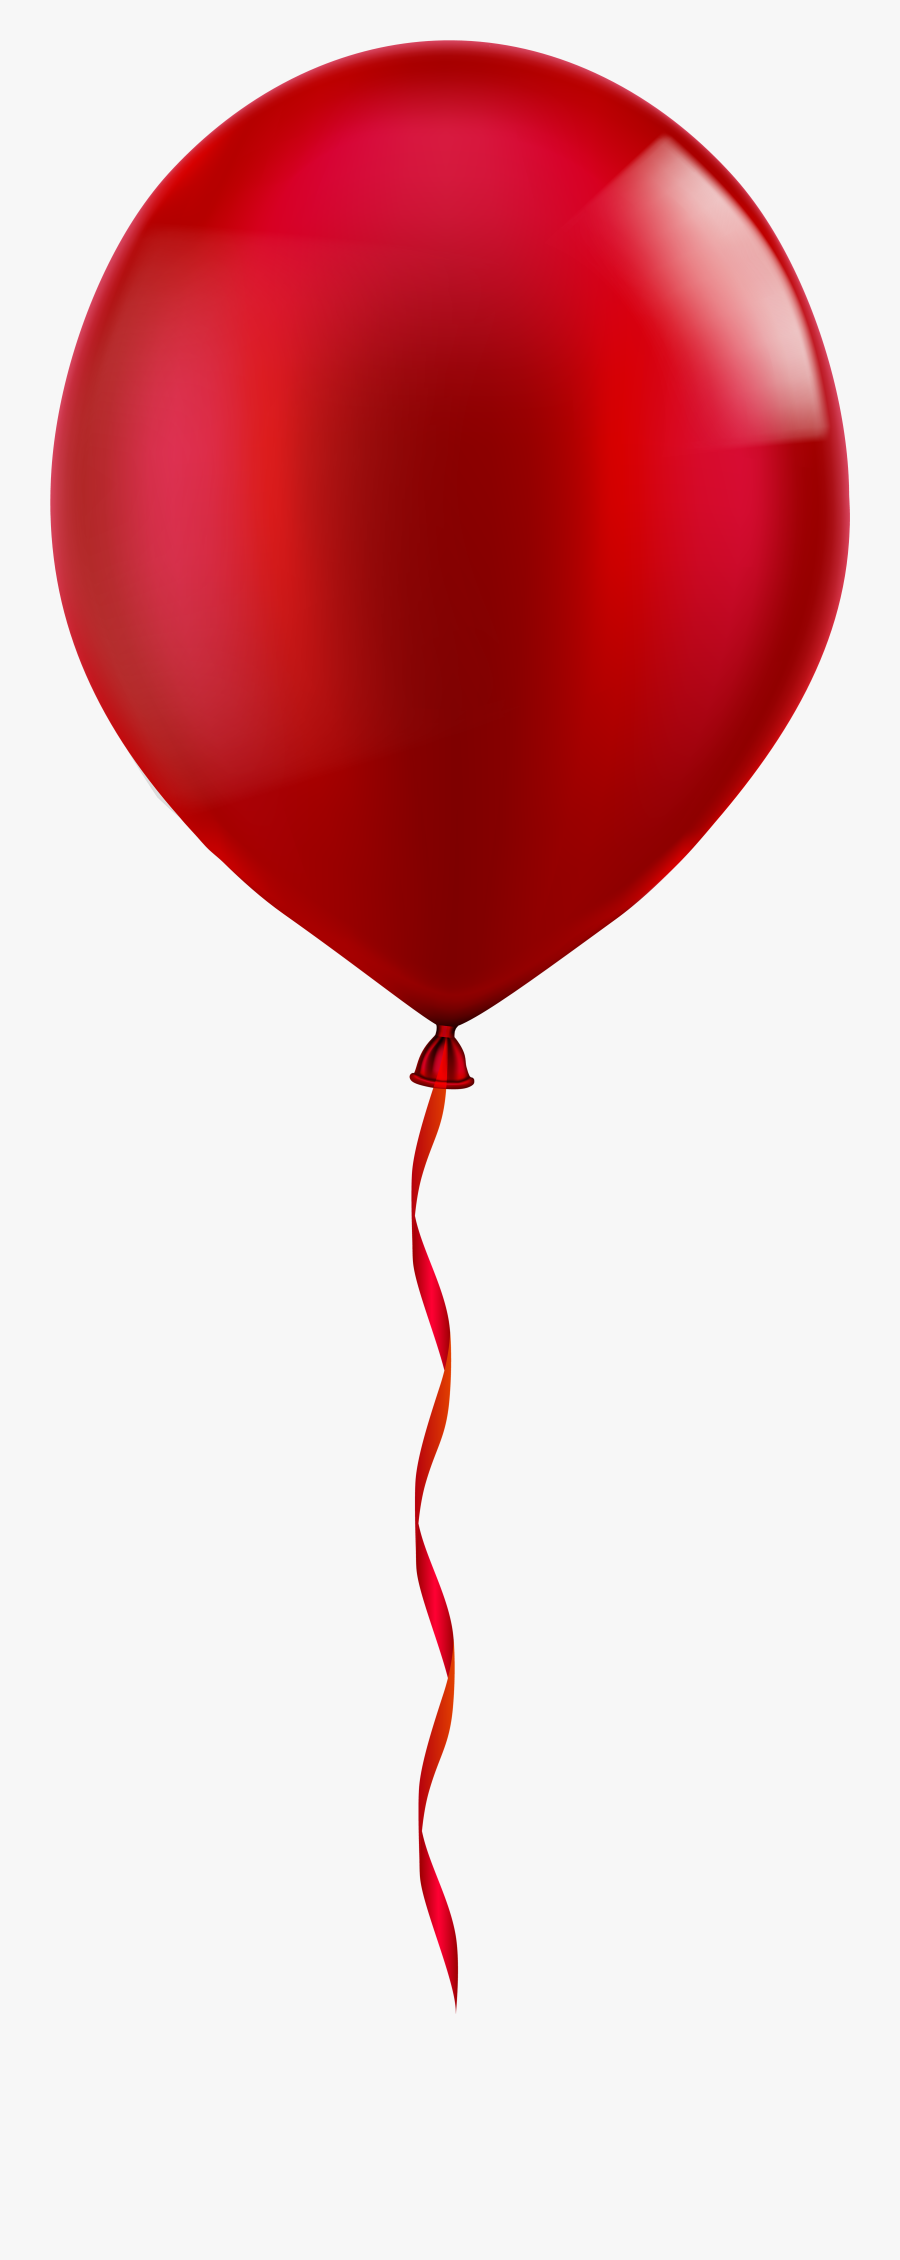 Clipart Black And White Download Red Balloon Png Clip - Transparent Red Balloon Png, Transparent Clipart